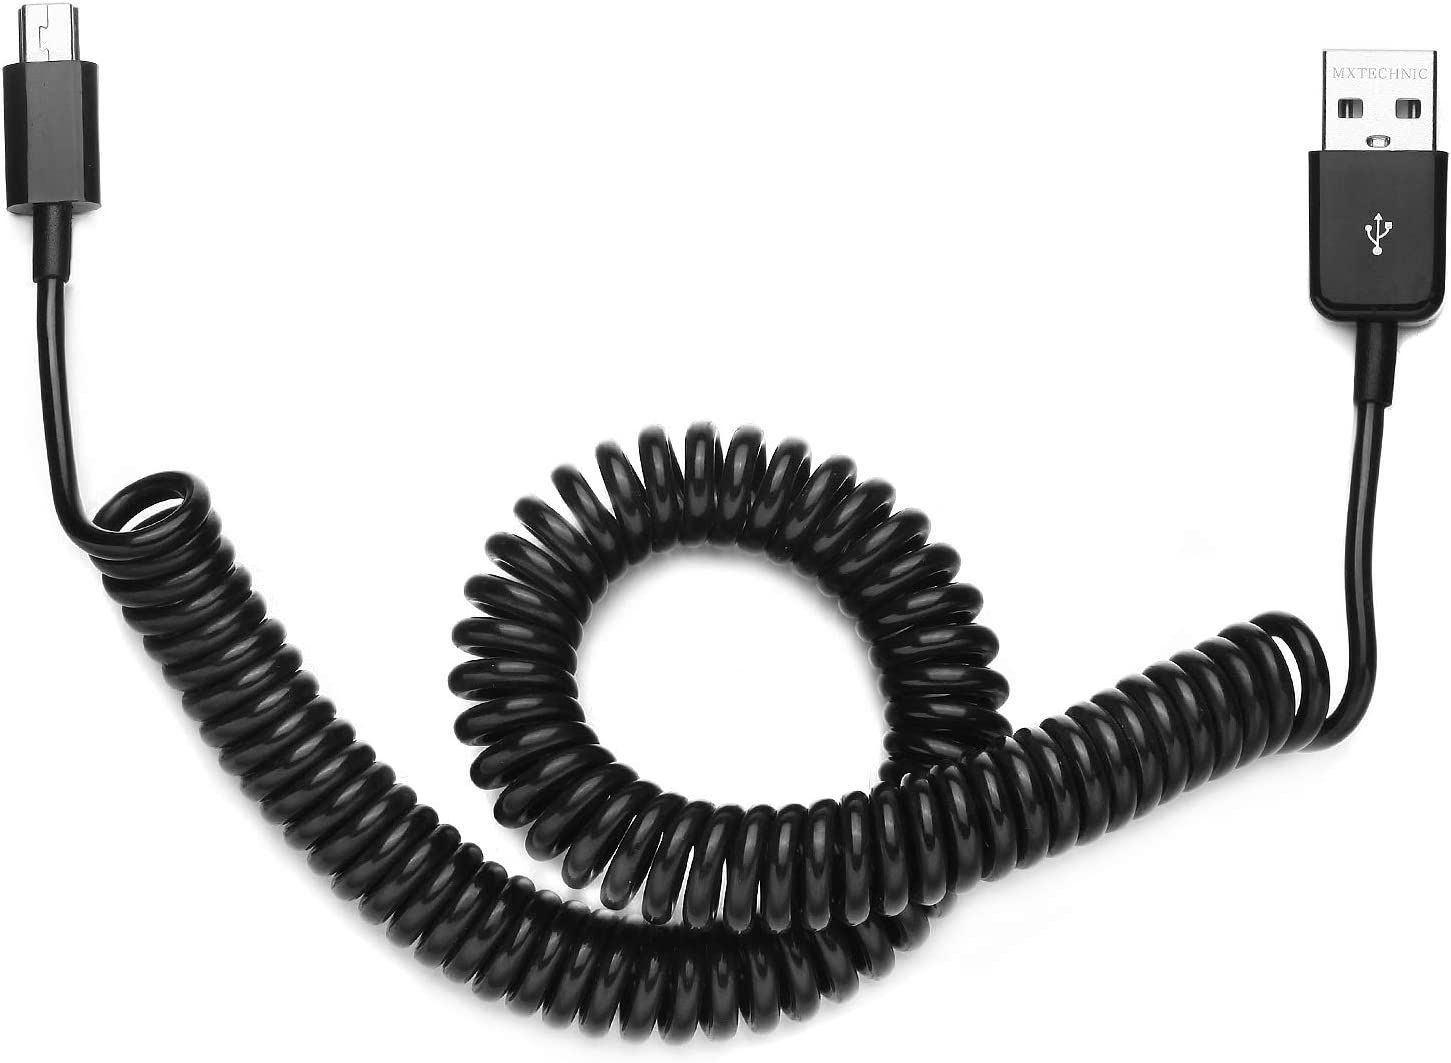 USB 2.0 Expansion Spring Coiled Cable 10 inch to 105 inch Standard Spiral Flexible Active Extension USB 2.0 Type A Male to Mini B Male Processors for Printers, Cameras, Mouse and Other USB Computers